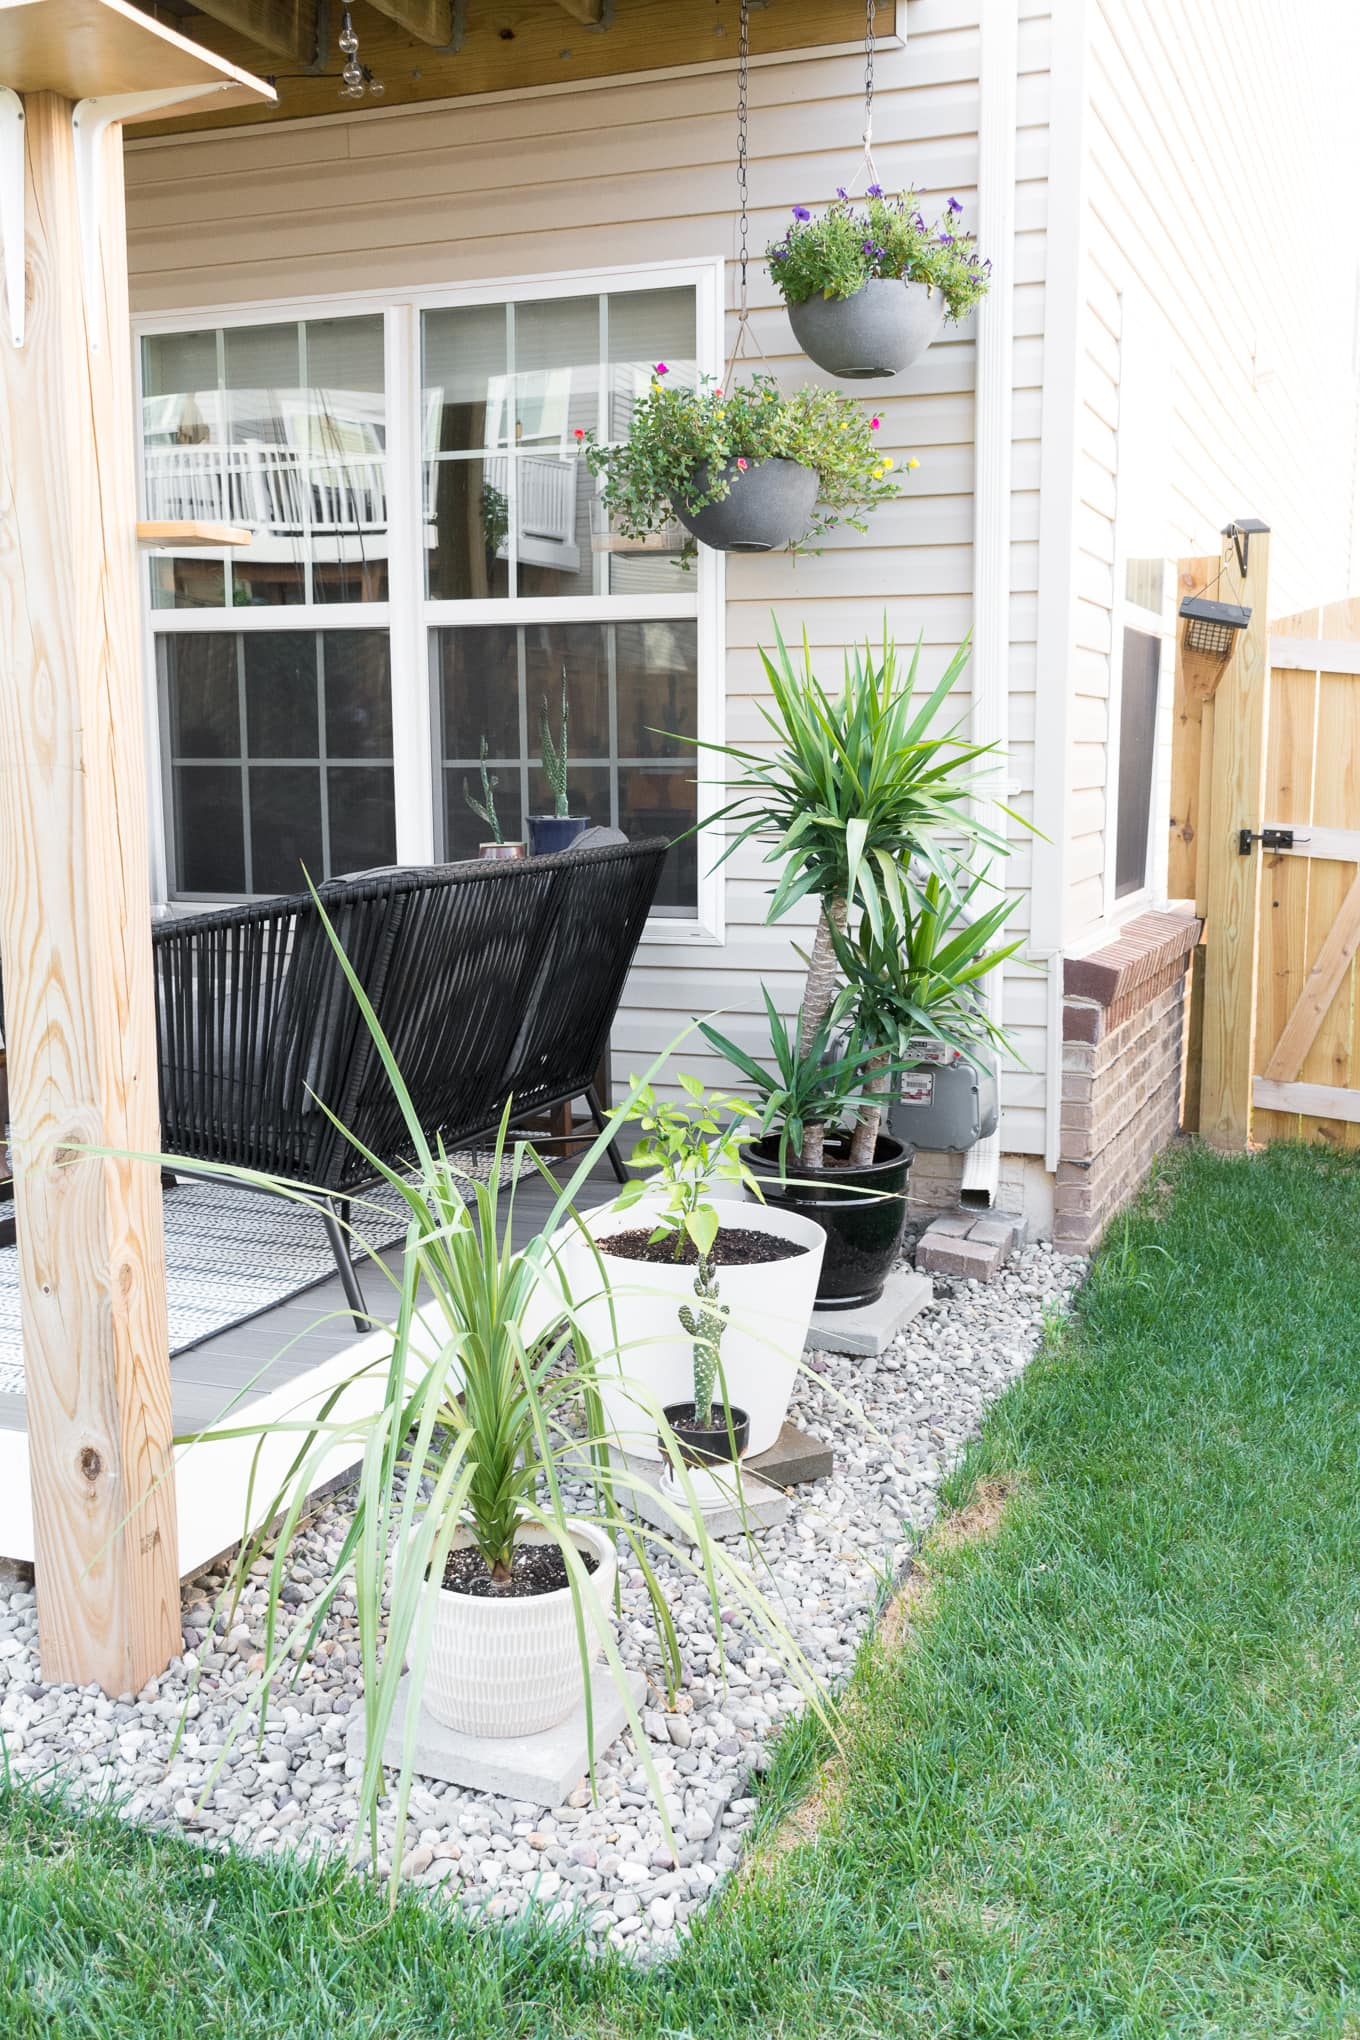 Hanging baskets and potted plants for a small backyard deck